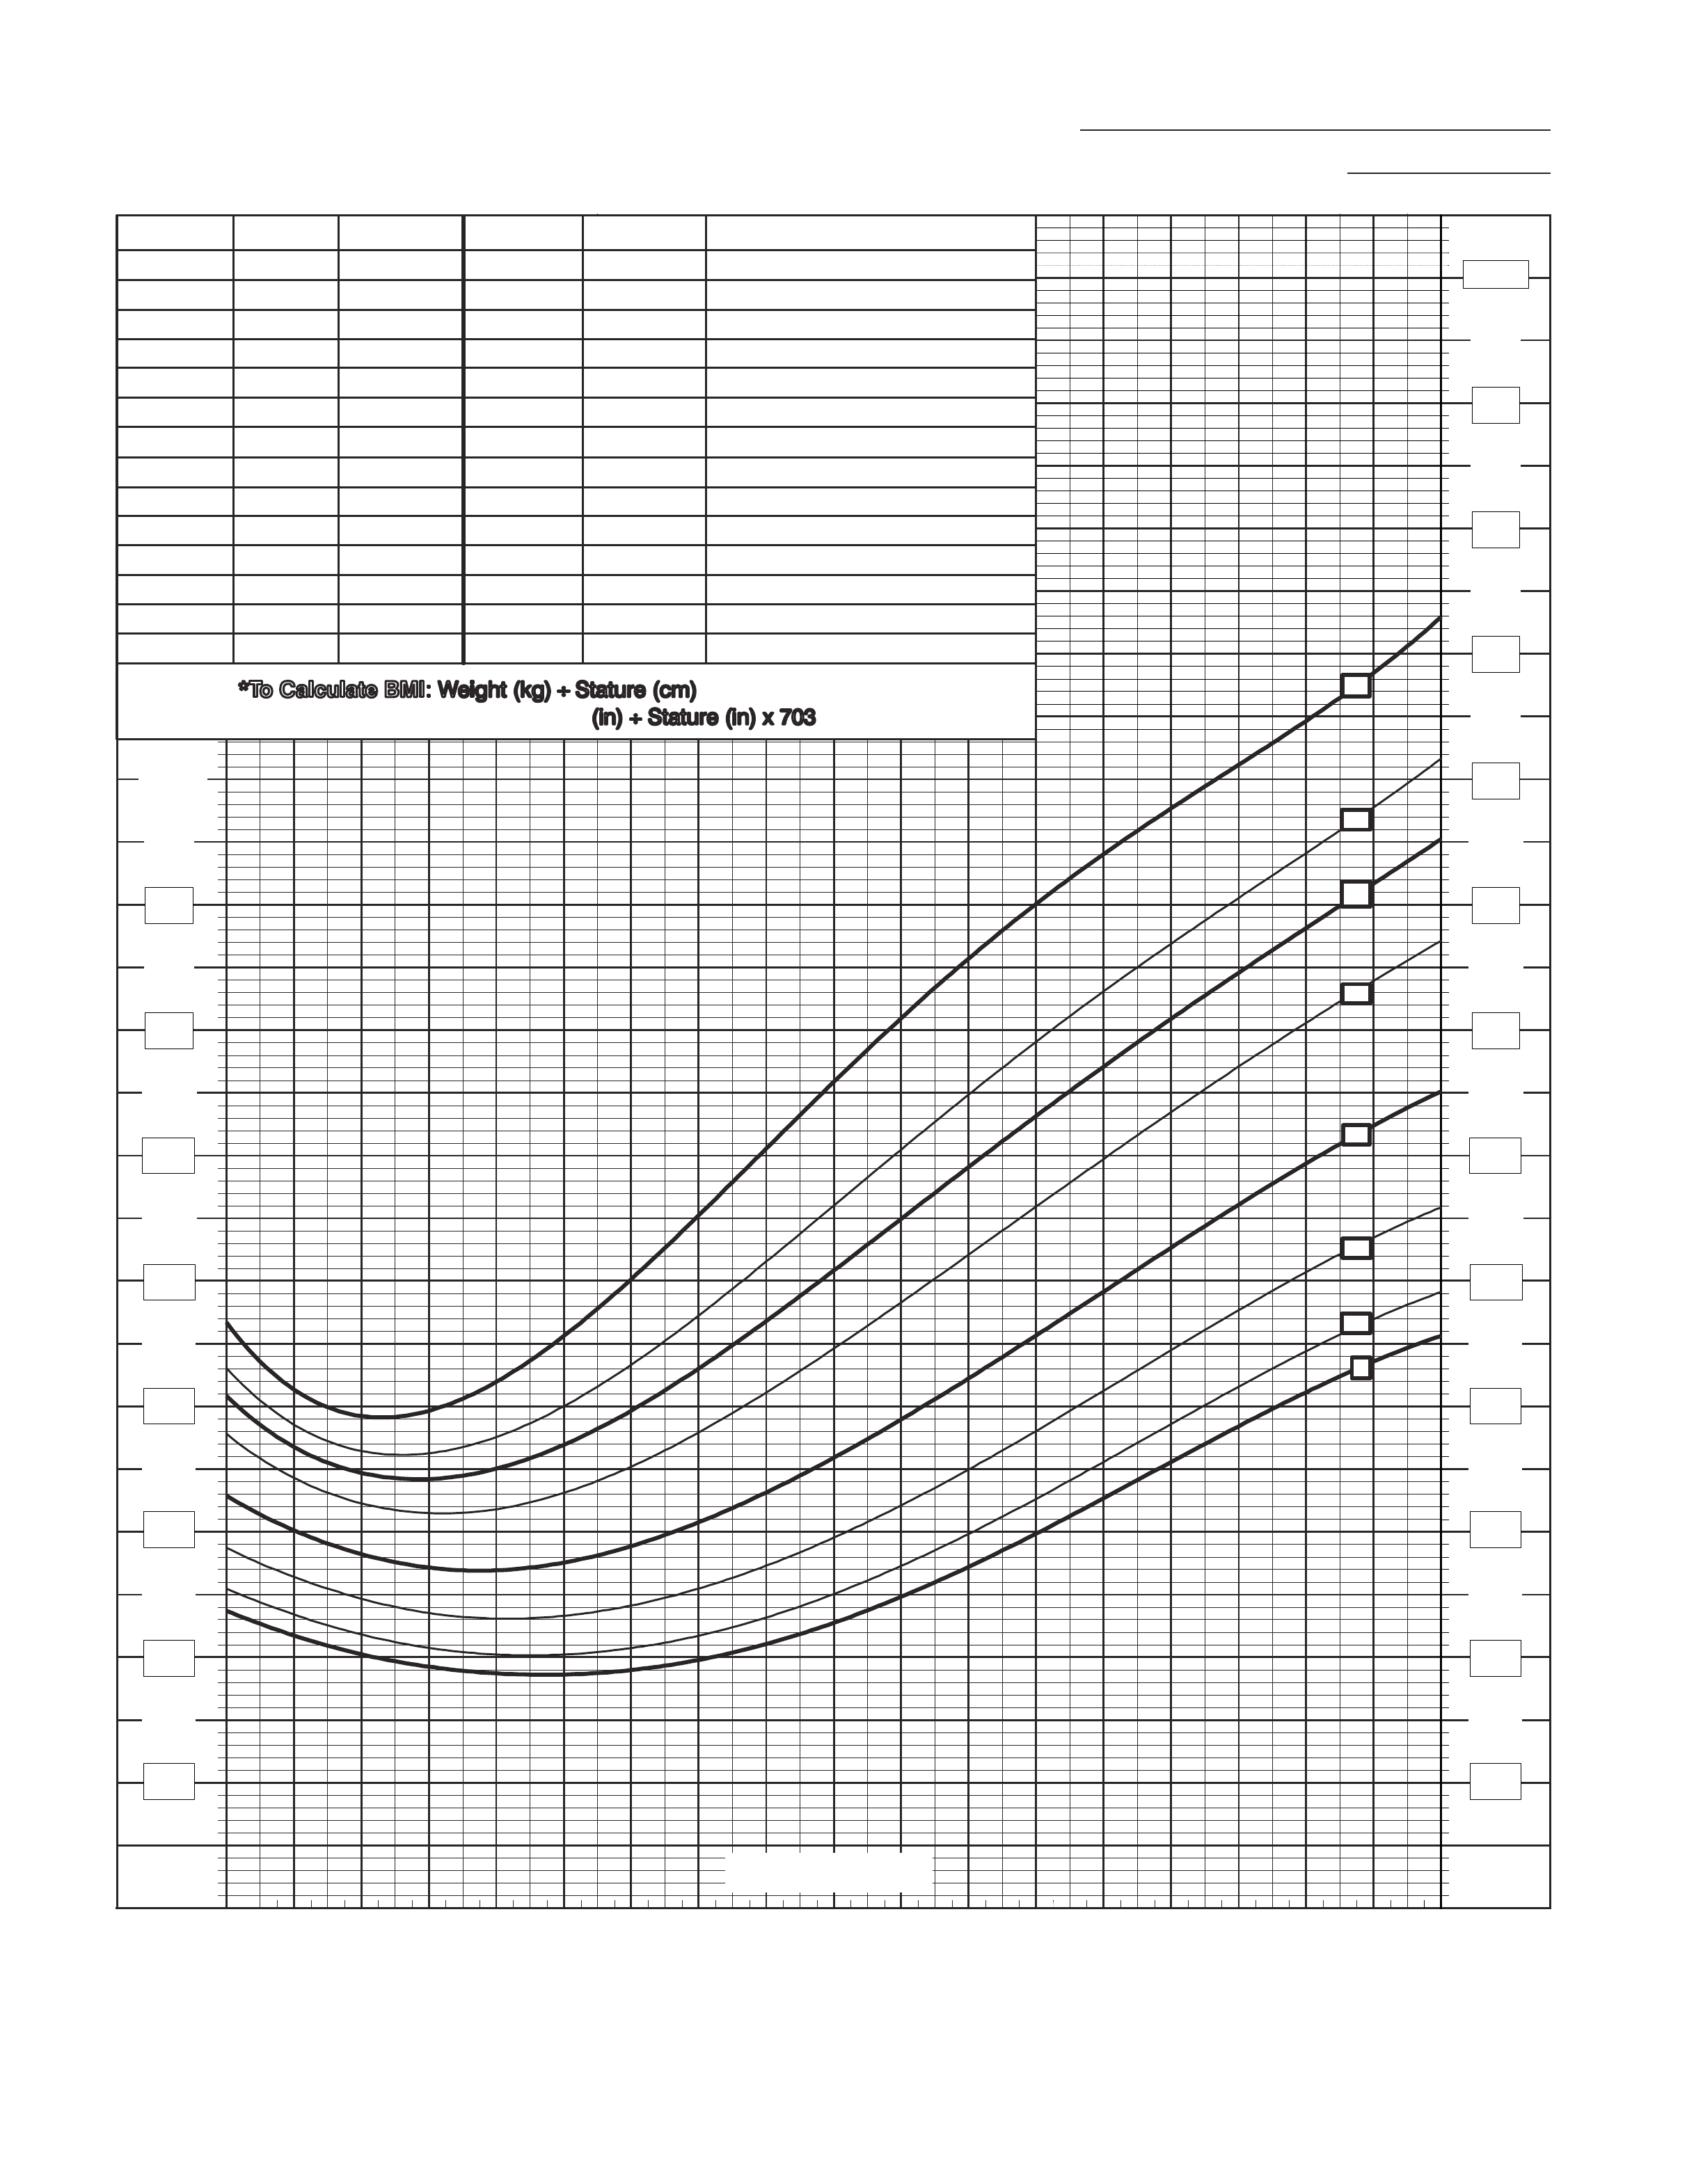 Body mass index chart 2 to 20 years boys free download nvjuhfo Gallery